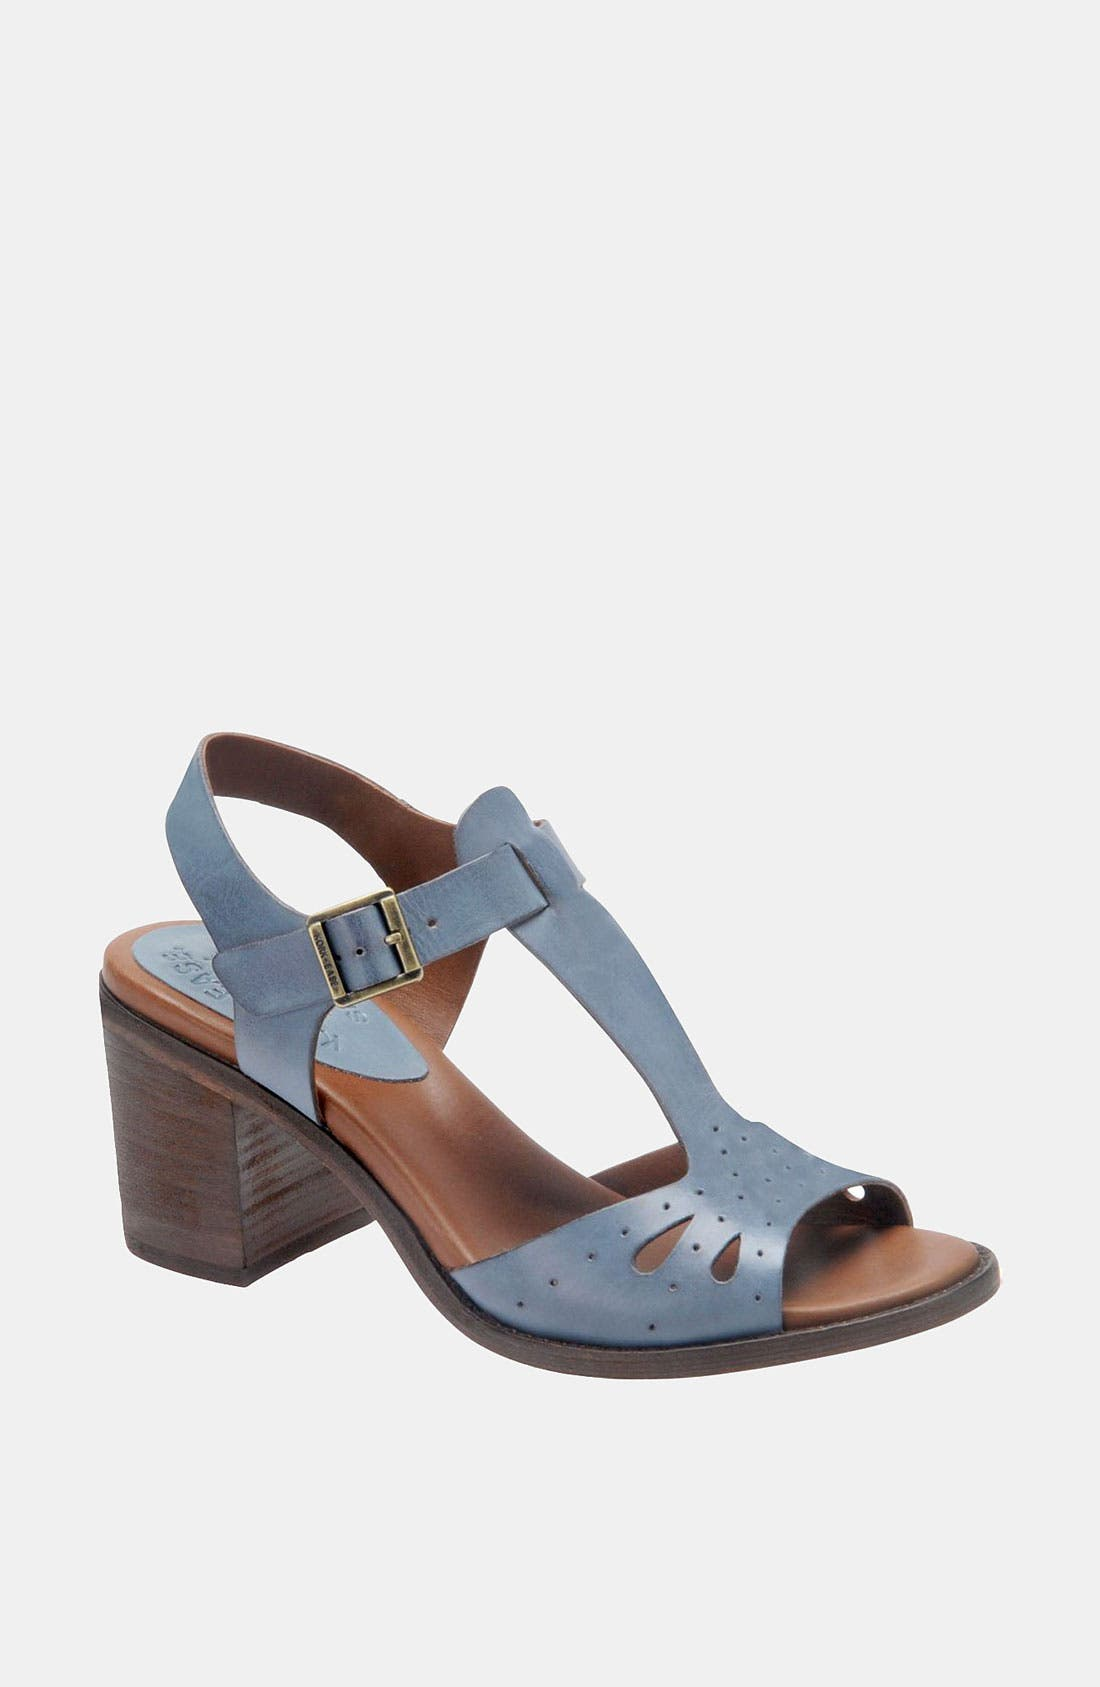 Main Image - Kork-Ease 'Betheny' Sandal